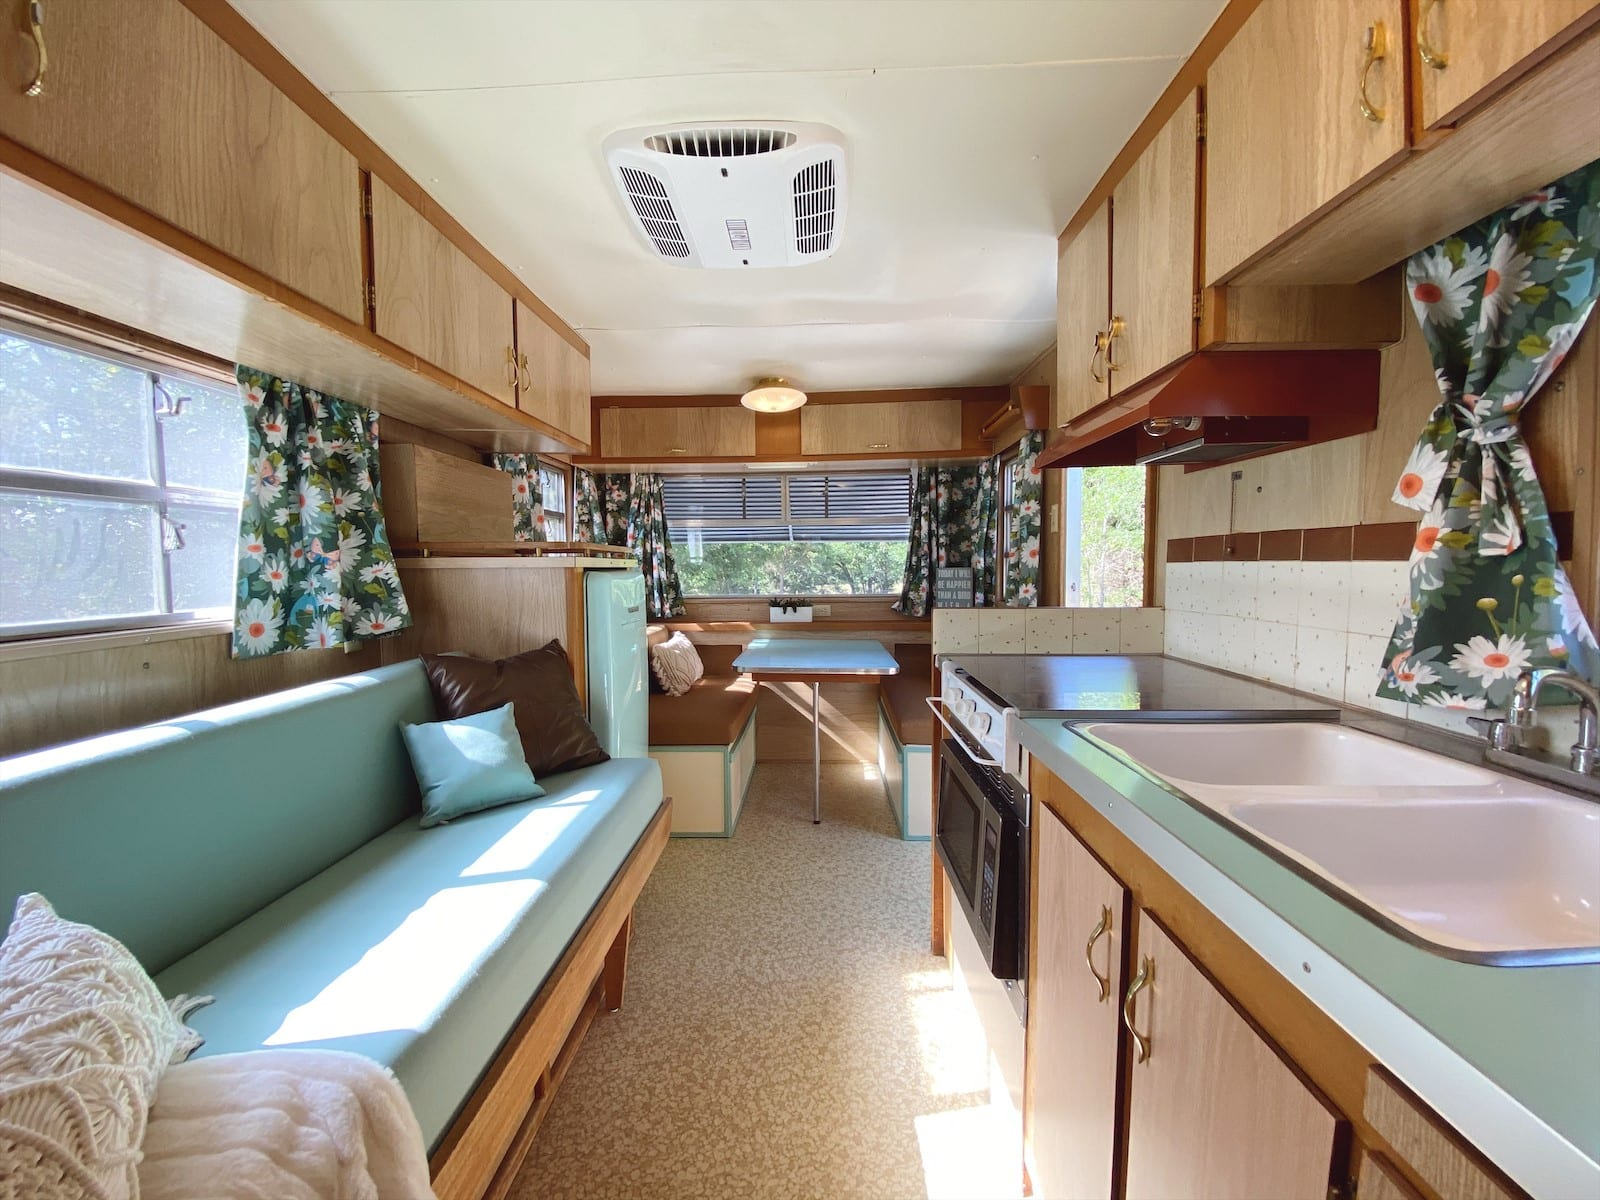 1965 Bloes Aero renovated airstream featuring mint green interior with couch and kitchen and dining area.